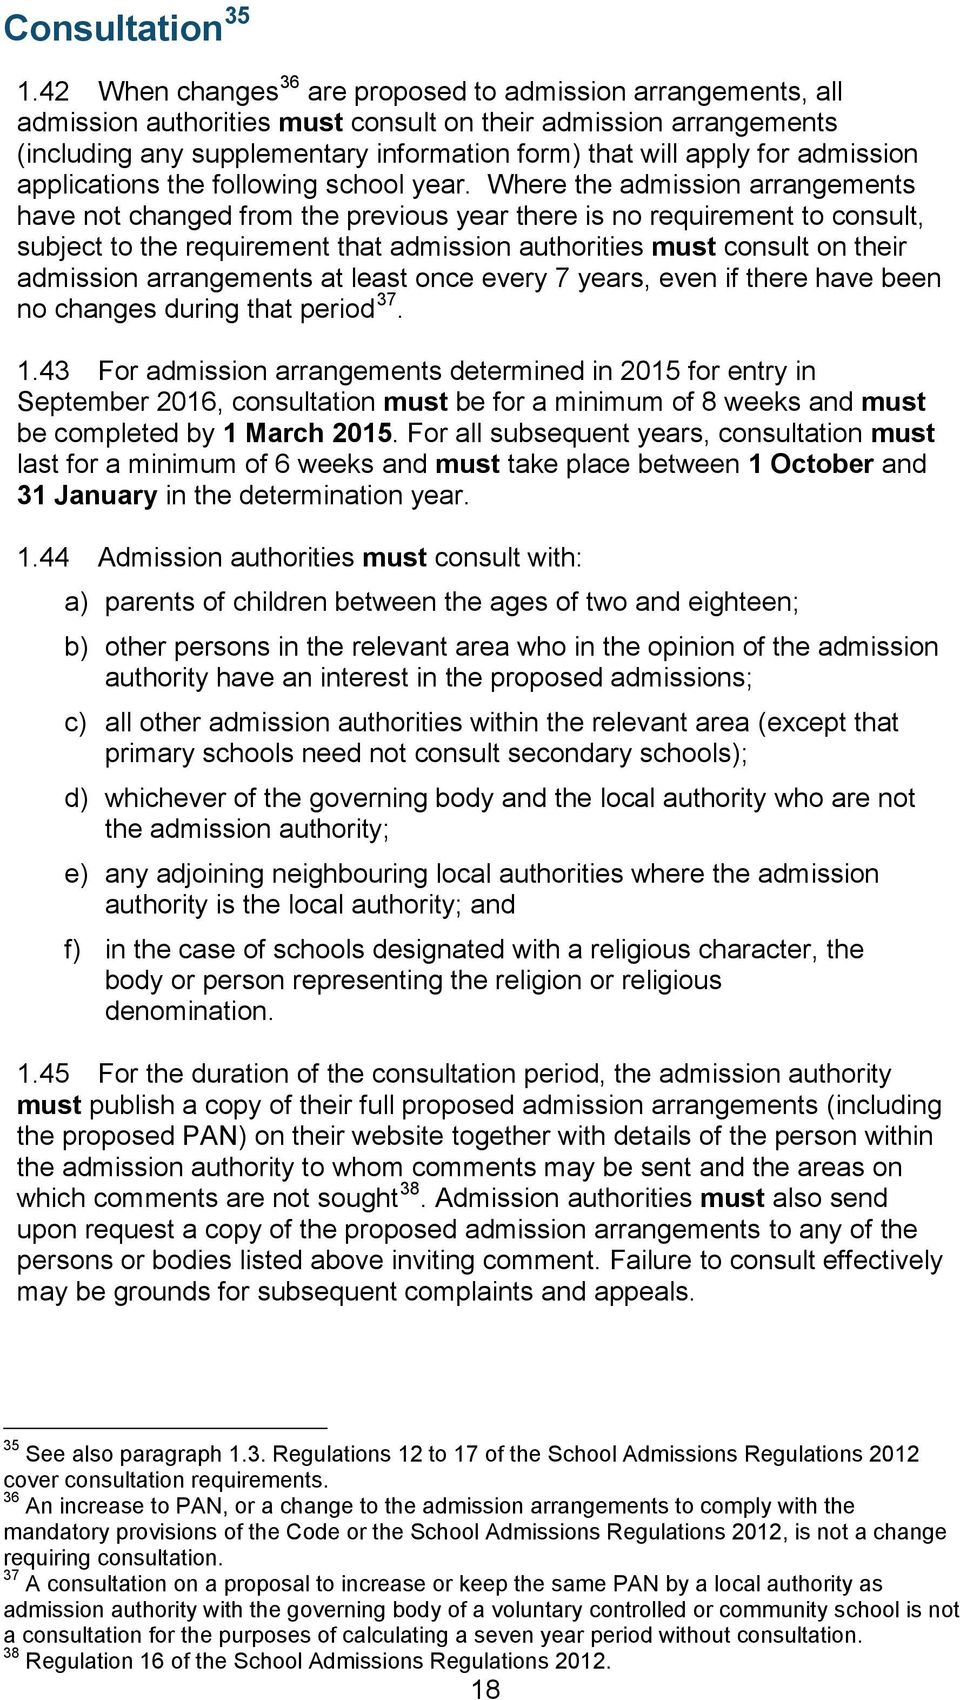 admission applications the following school year.